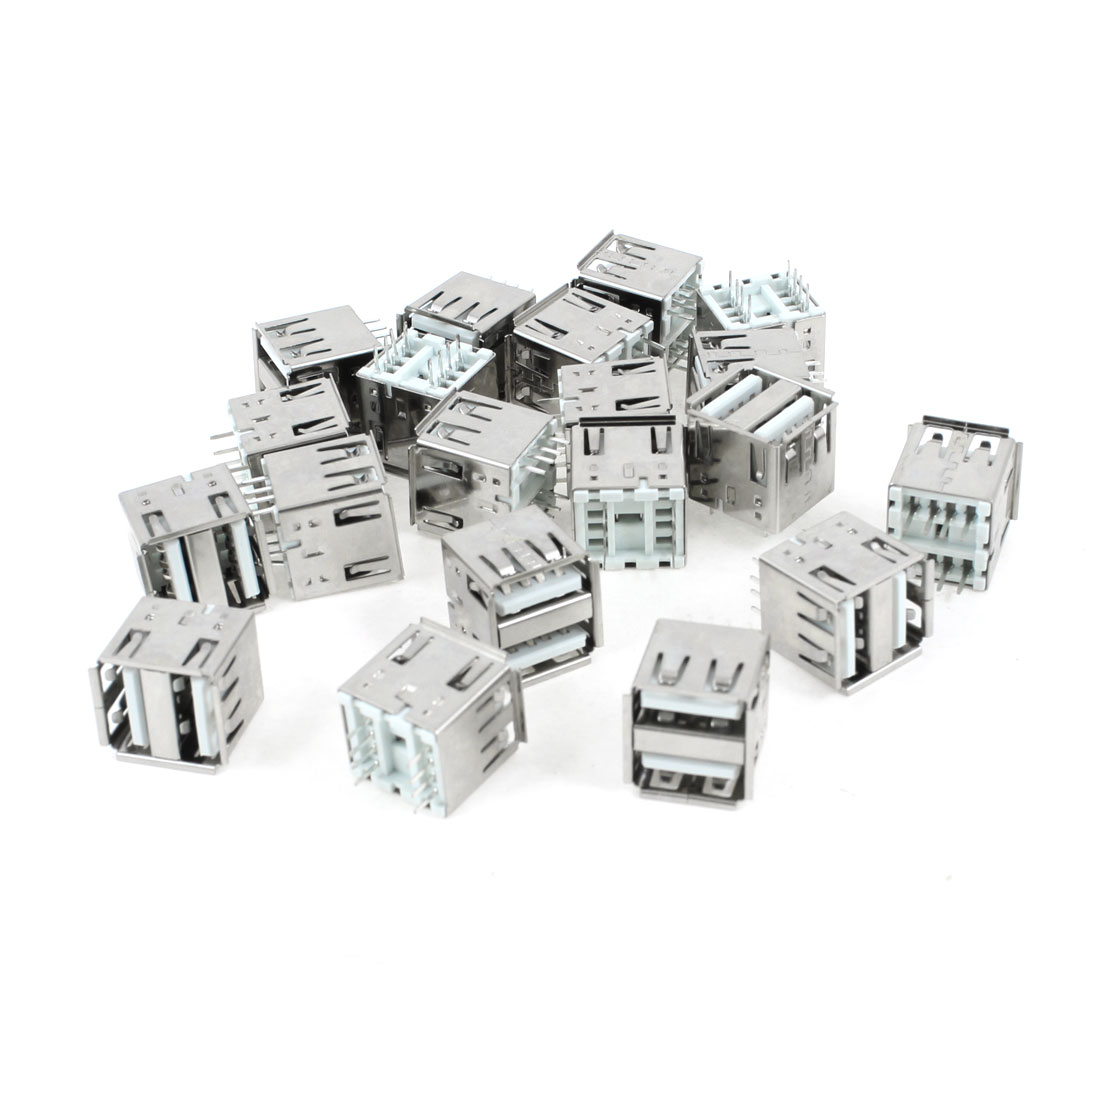 20 Pcs Double Layer USB Type A 180 Degree DIP 8-Pin Female Jack Connector